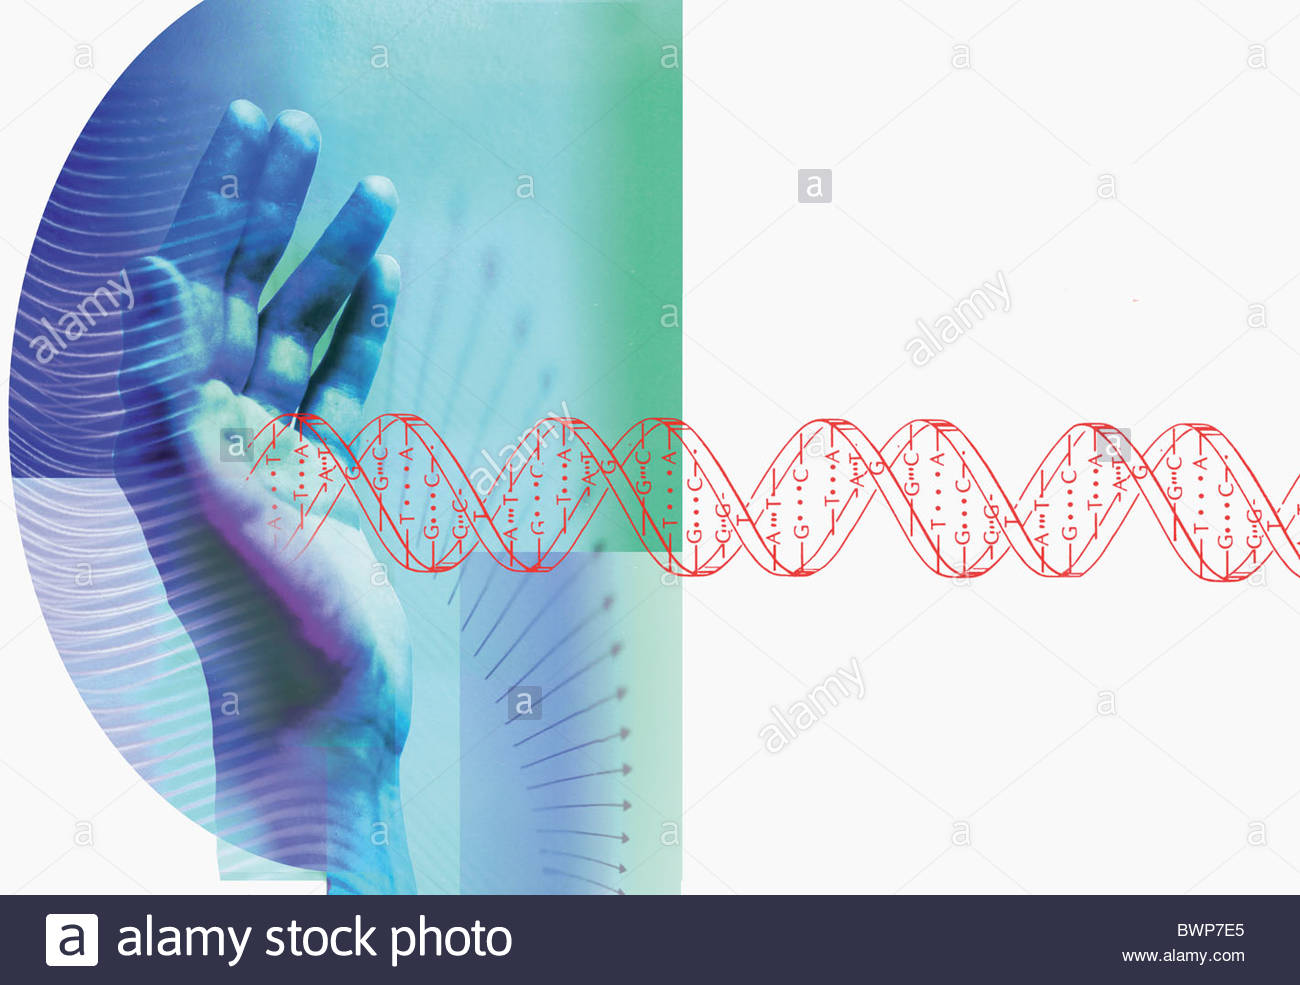 Hands stopping DNA helix - Stock Image